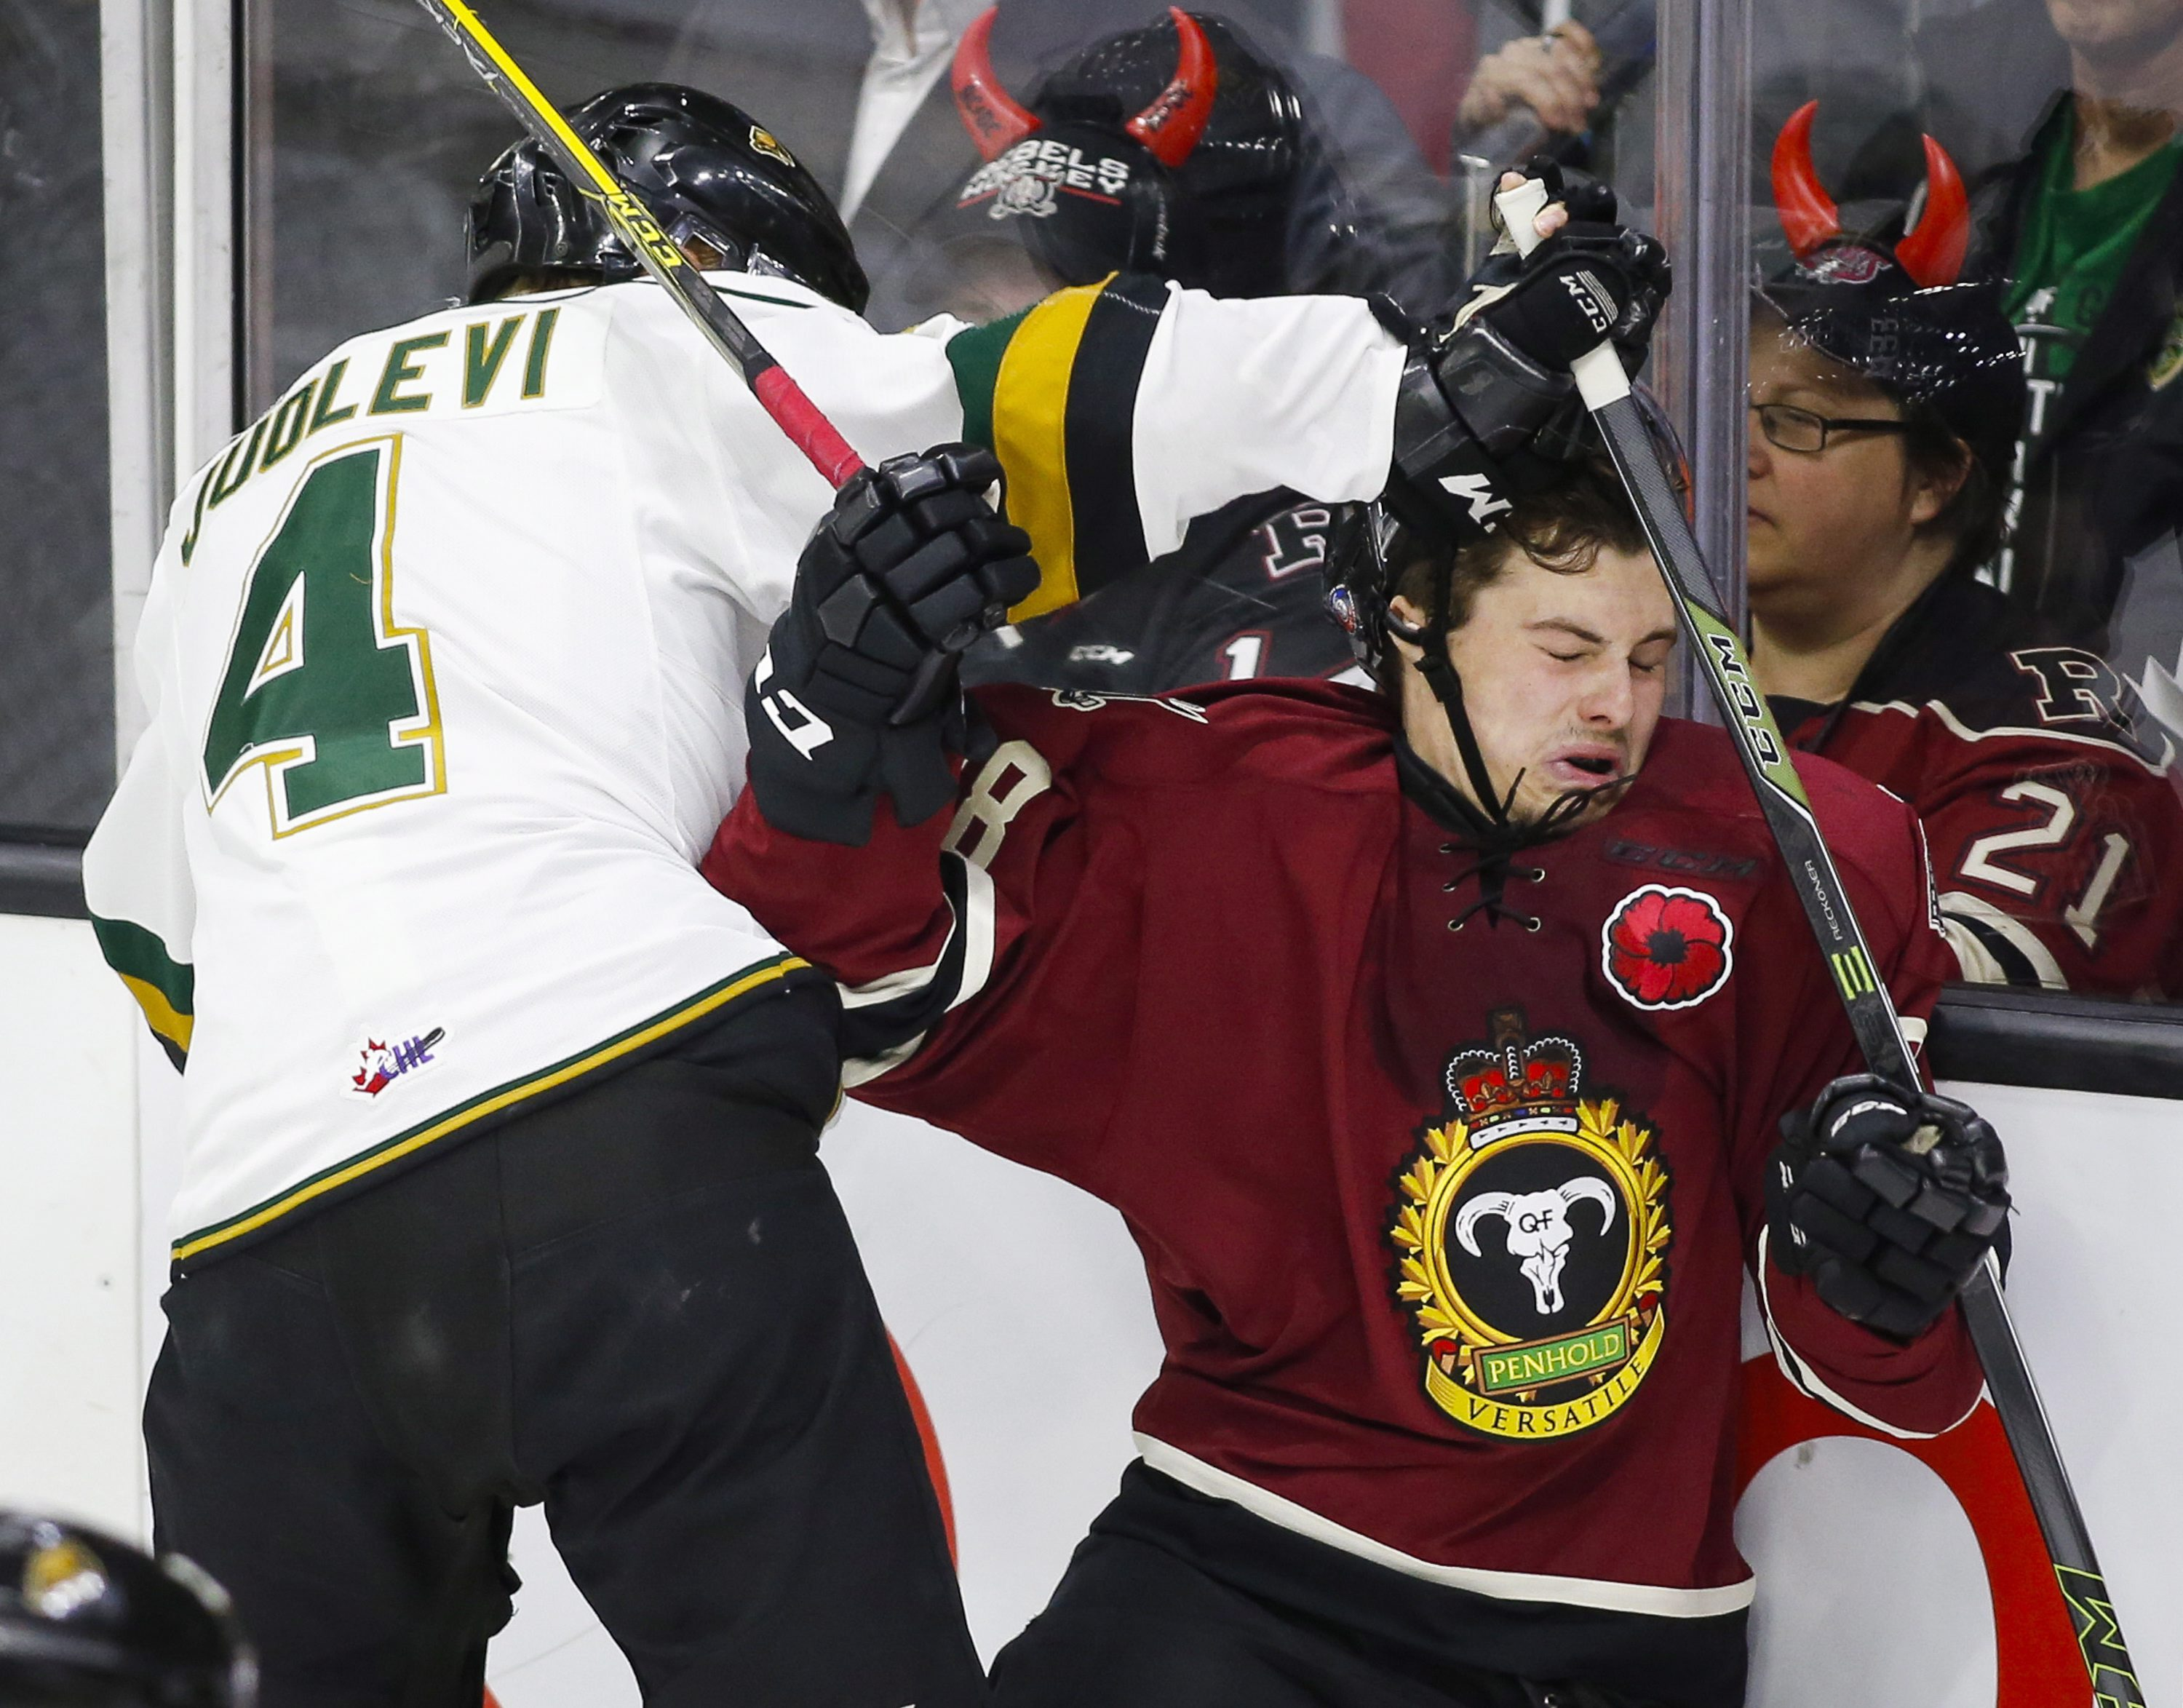 London Knights' Olli Juolevi, left, from Finland, brings down Red Deer Rebels' Adam Helewka during the first period of a CHL Memorial Cup hockey game in Red Deer, Alberta, Friday, May 20, 2016. (Jeff McIntosh/The Canadian Press via AP)